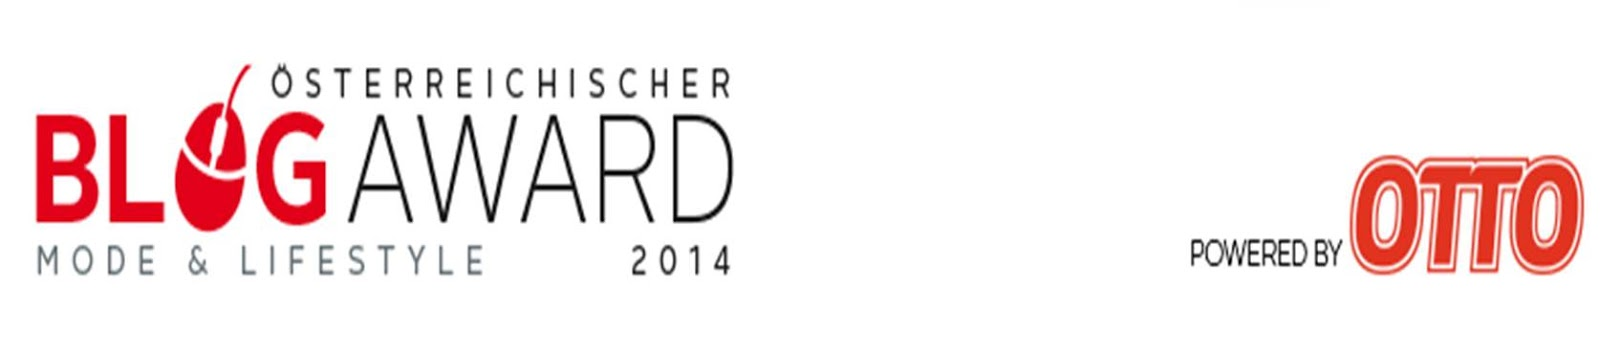 http://www.ottoversand.at/blogaward-2014/gewinner/